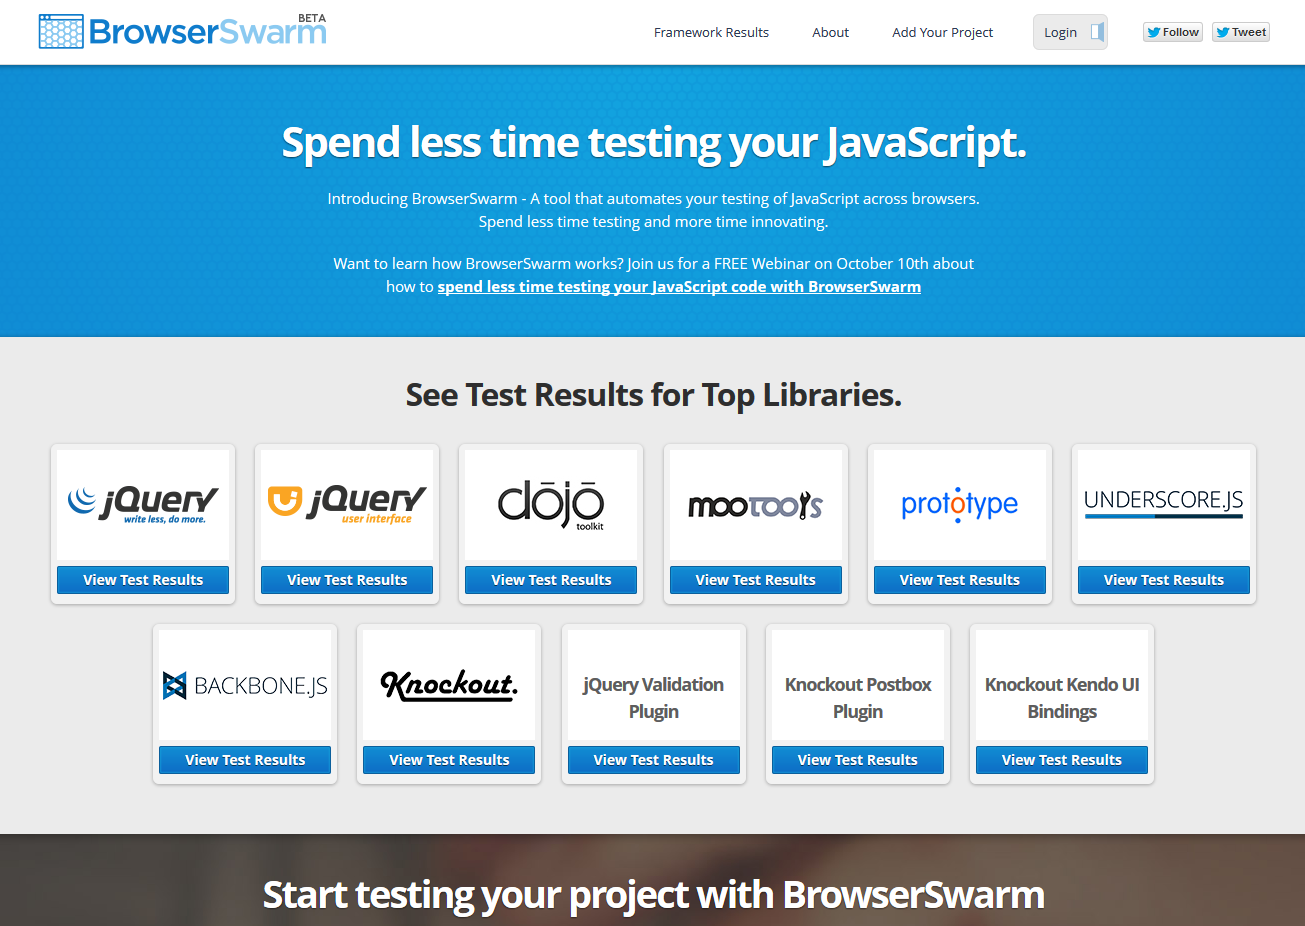 BrowserSwarm - Automated Testing Your JavaScript Across Browsers